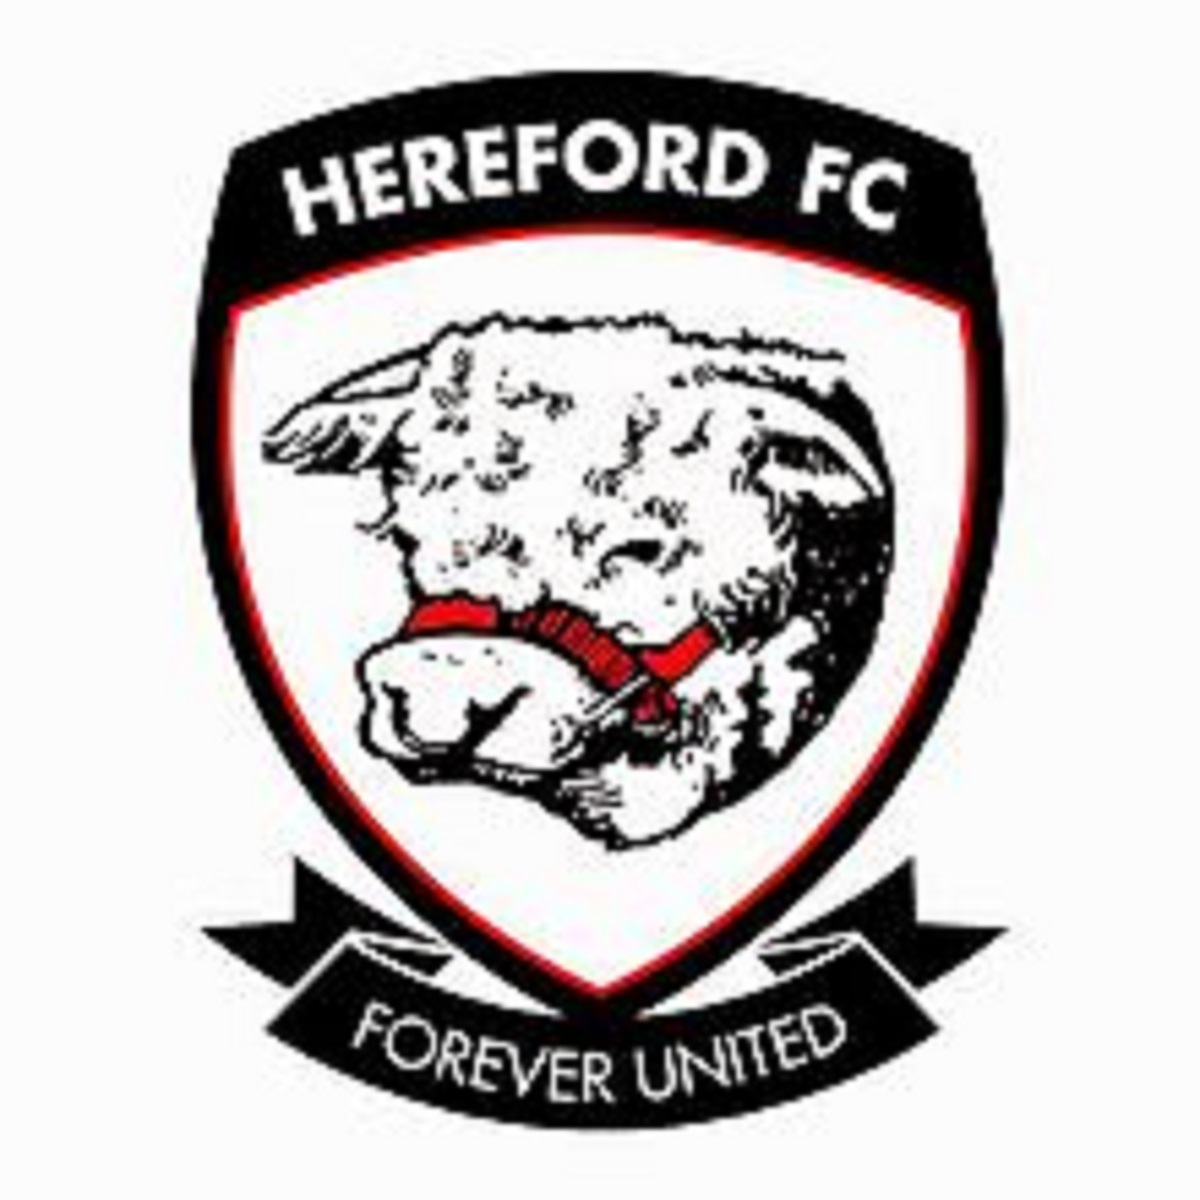 Hereford beat Oxford City 2-1 in the FA Trophy